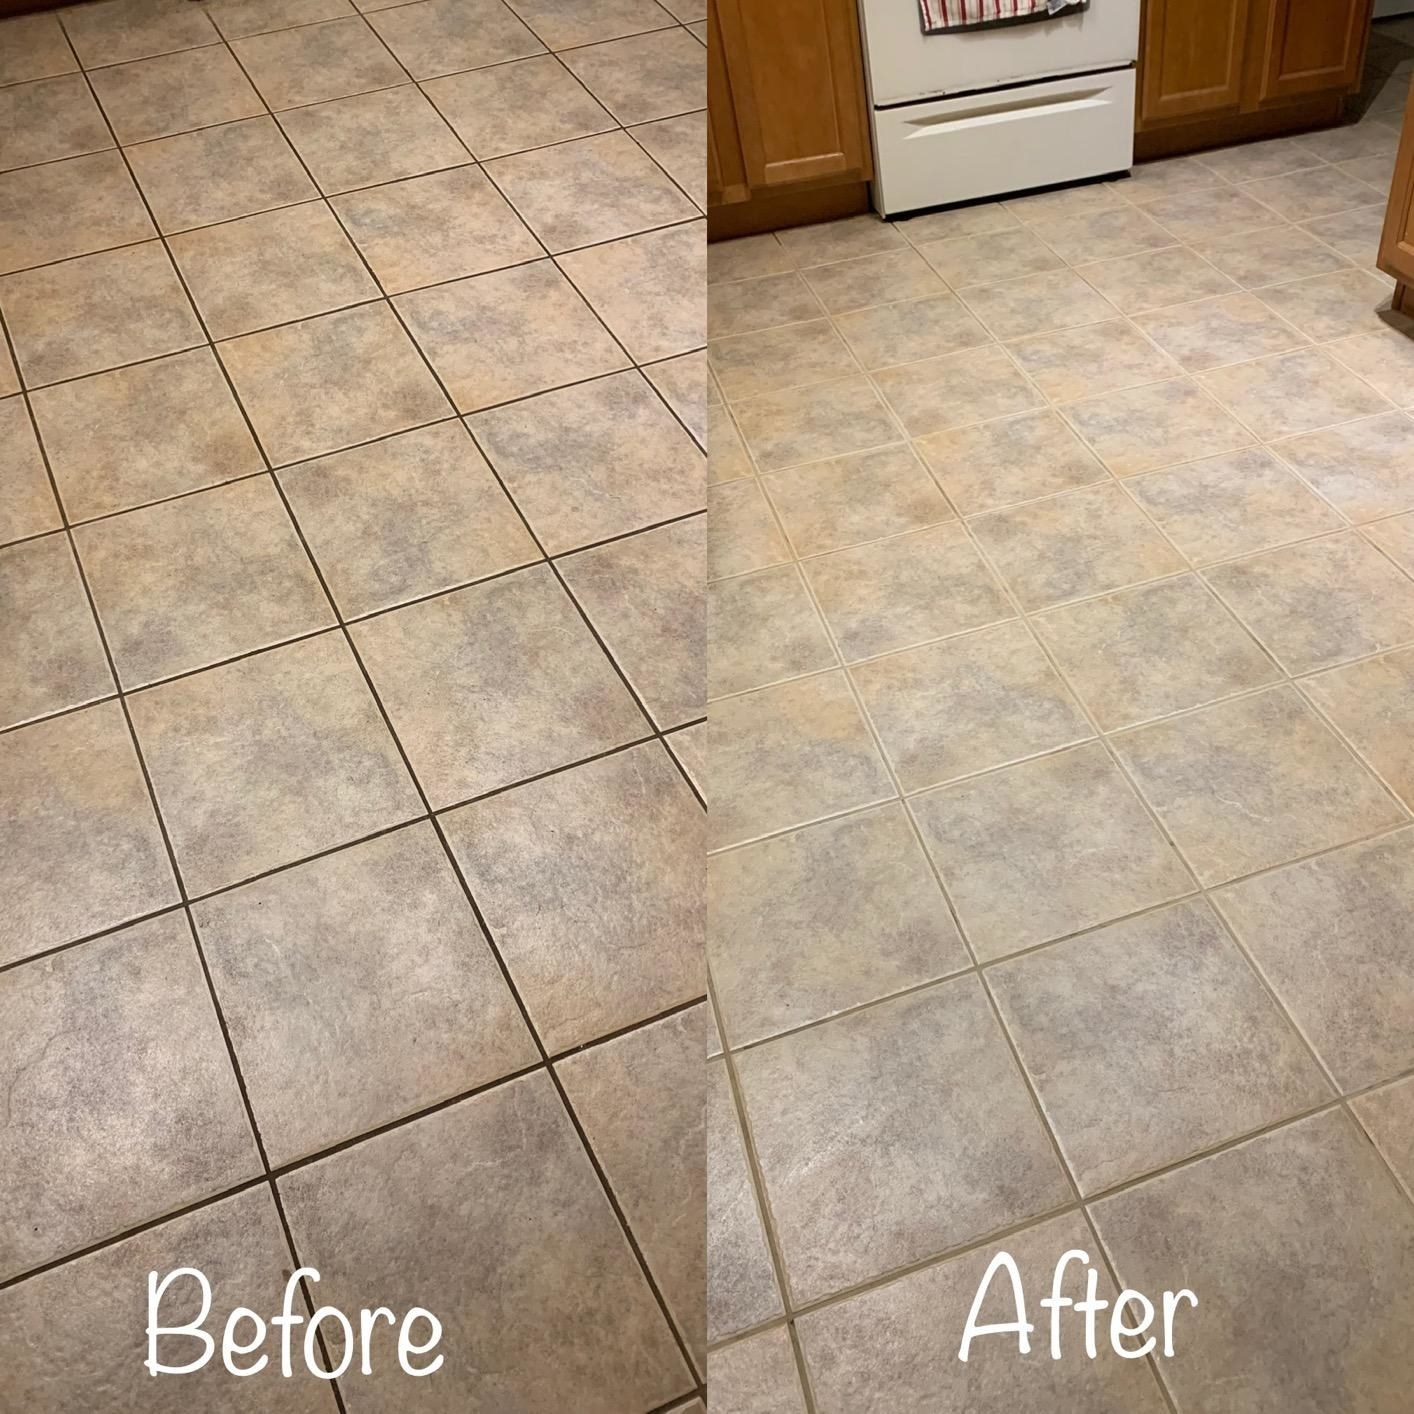 Reviewer before-and-after photos showing dark grout restore to its original color after treating with the cleaner